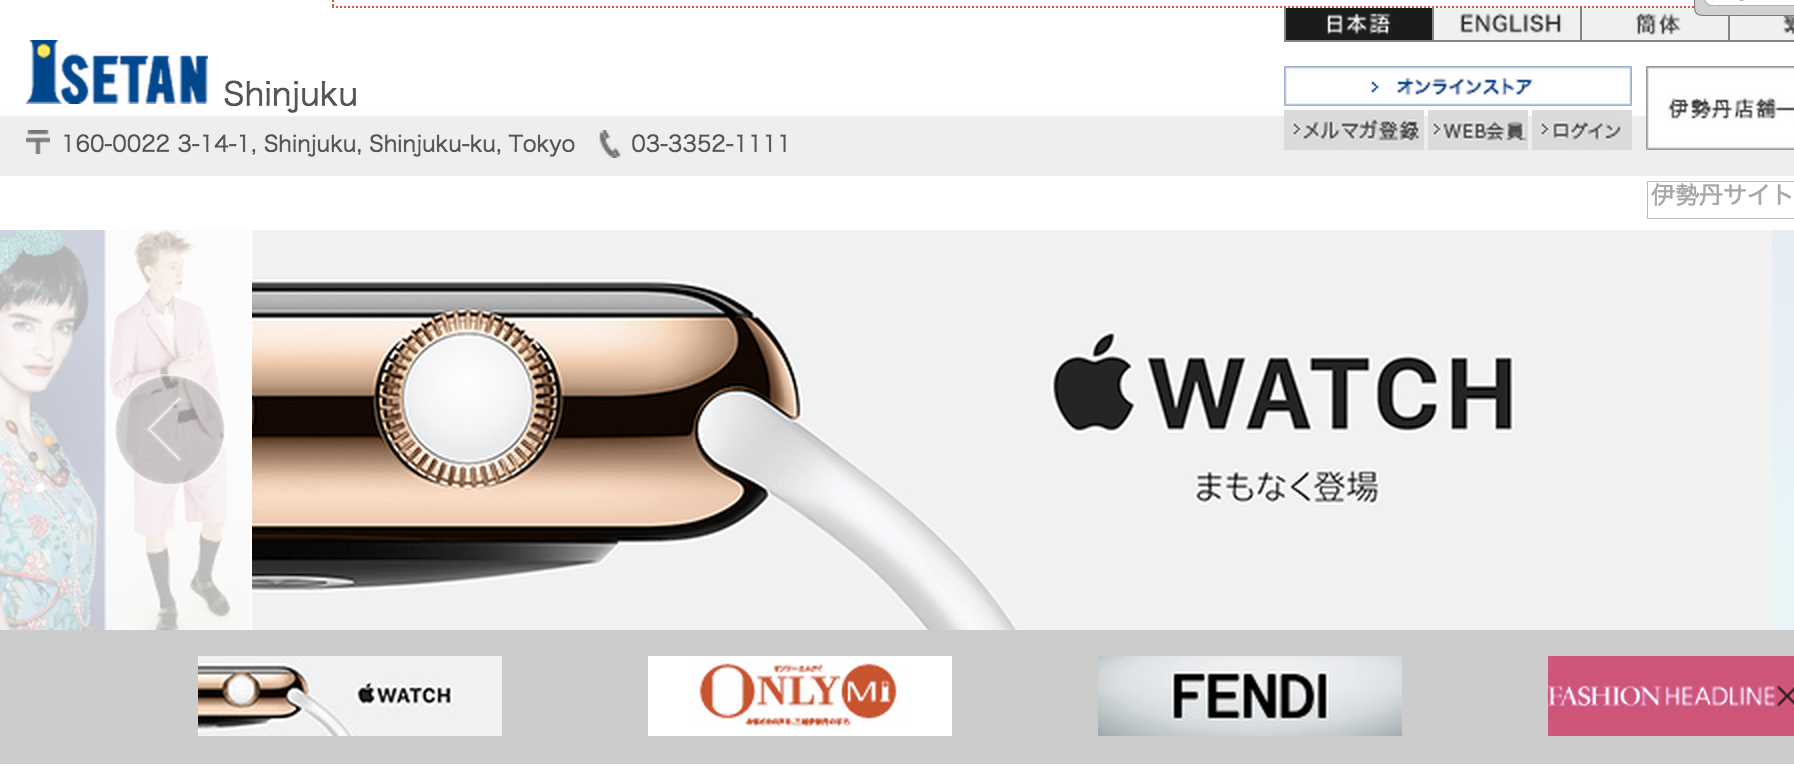 Apple Watch Isetan  Shinjuku